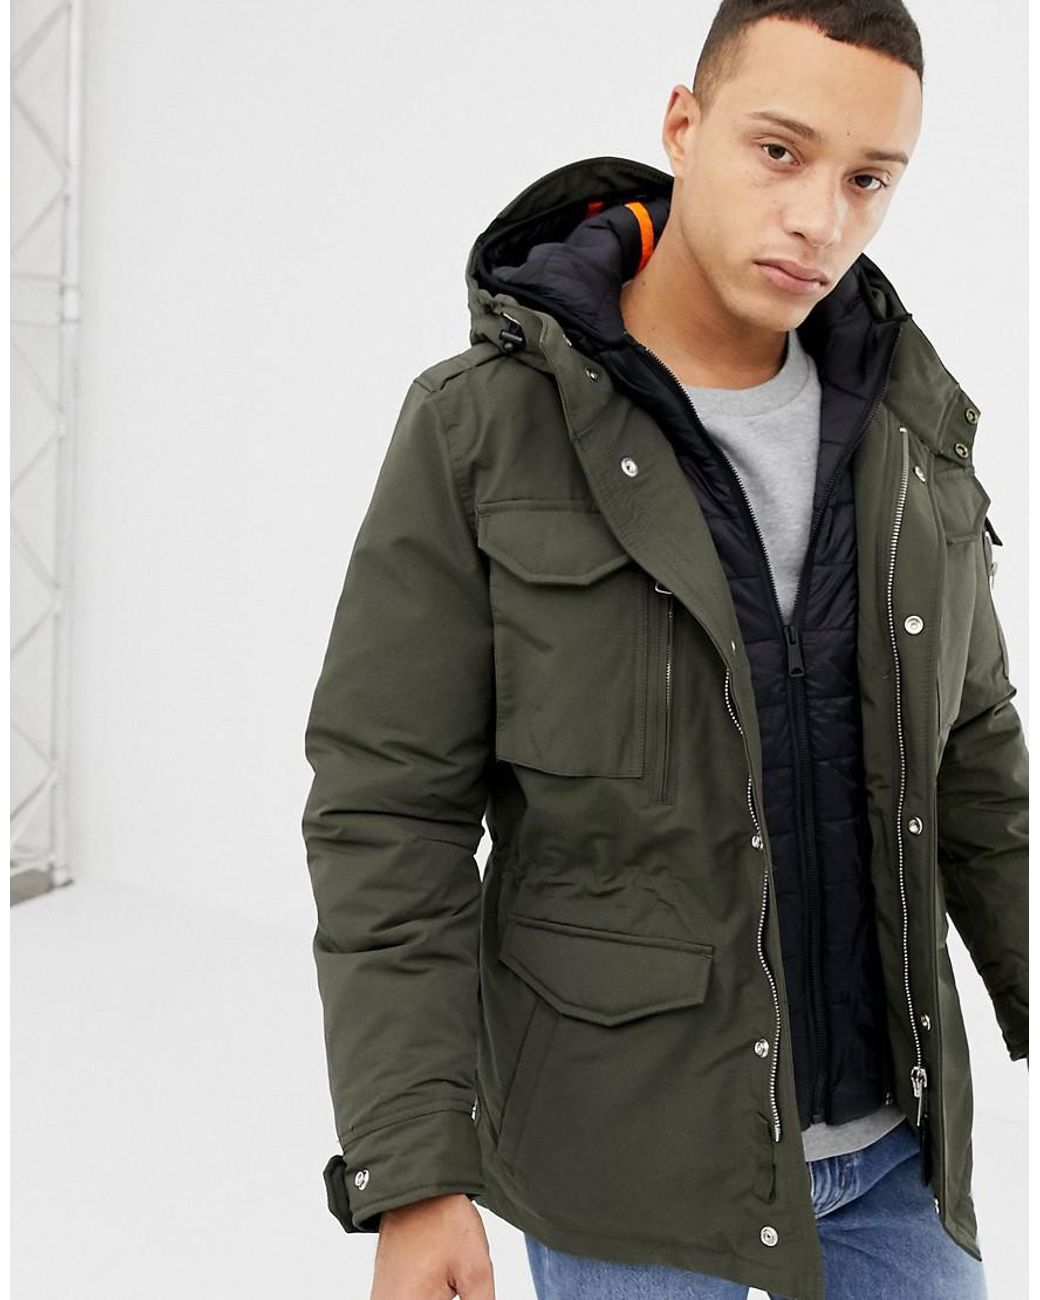 official photos 4e26f ecf42 Men's Smith 18 Detachable Quilted Hooded Insert M65 Parka Jacket Slim Fit  In Green/black